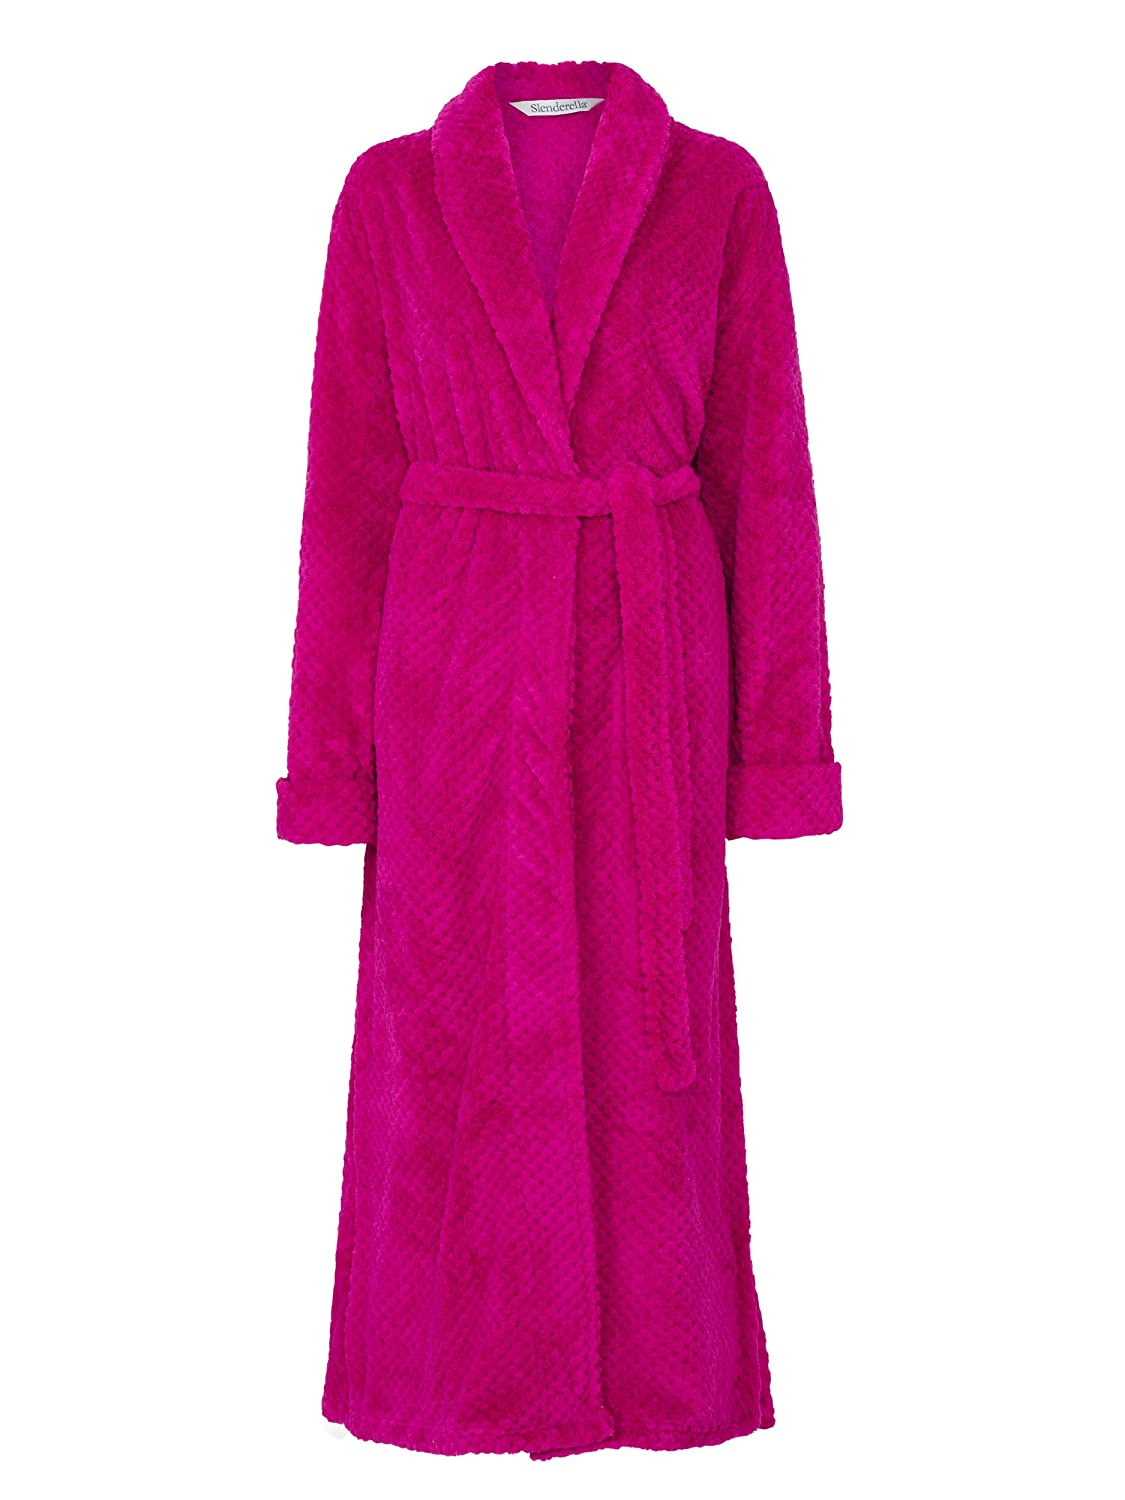 Ladies 52 Long Luxury 300GSM Thick Soft Fleece Collared Bath Robe Dressing Gown Slenderella